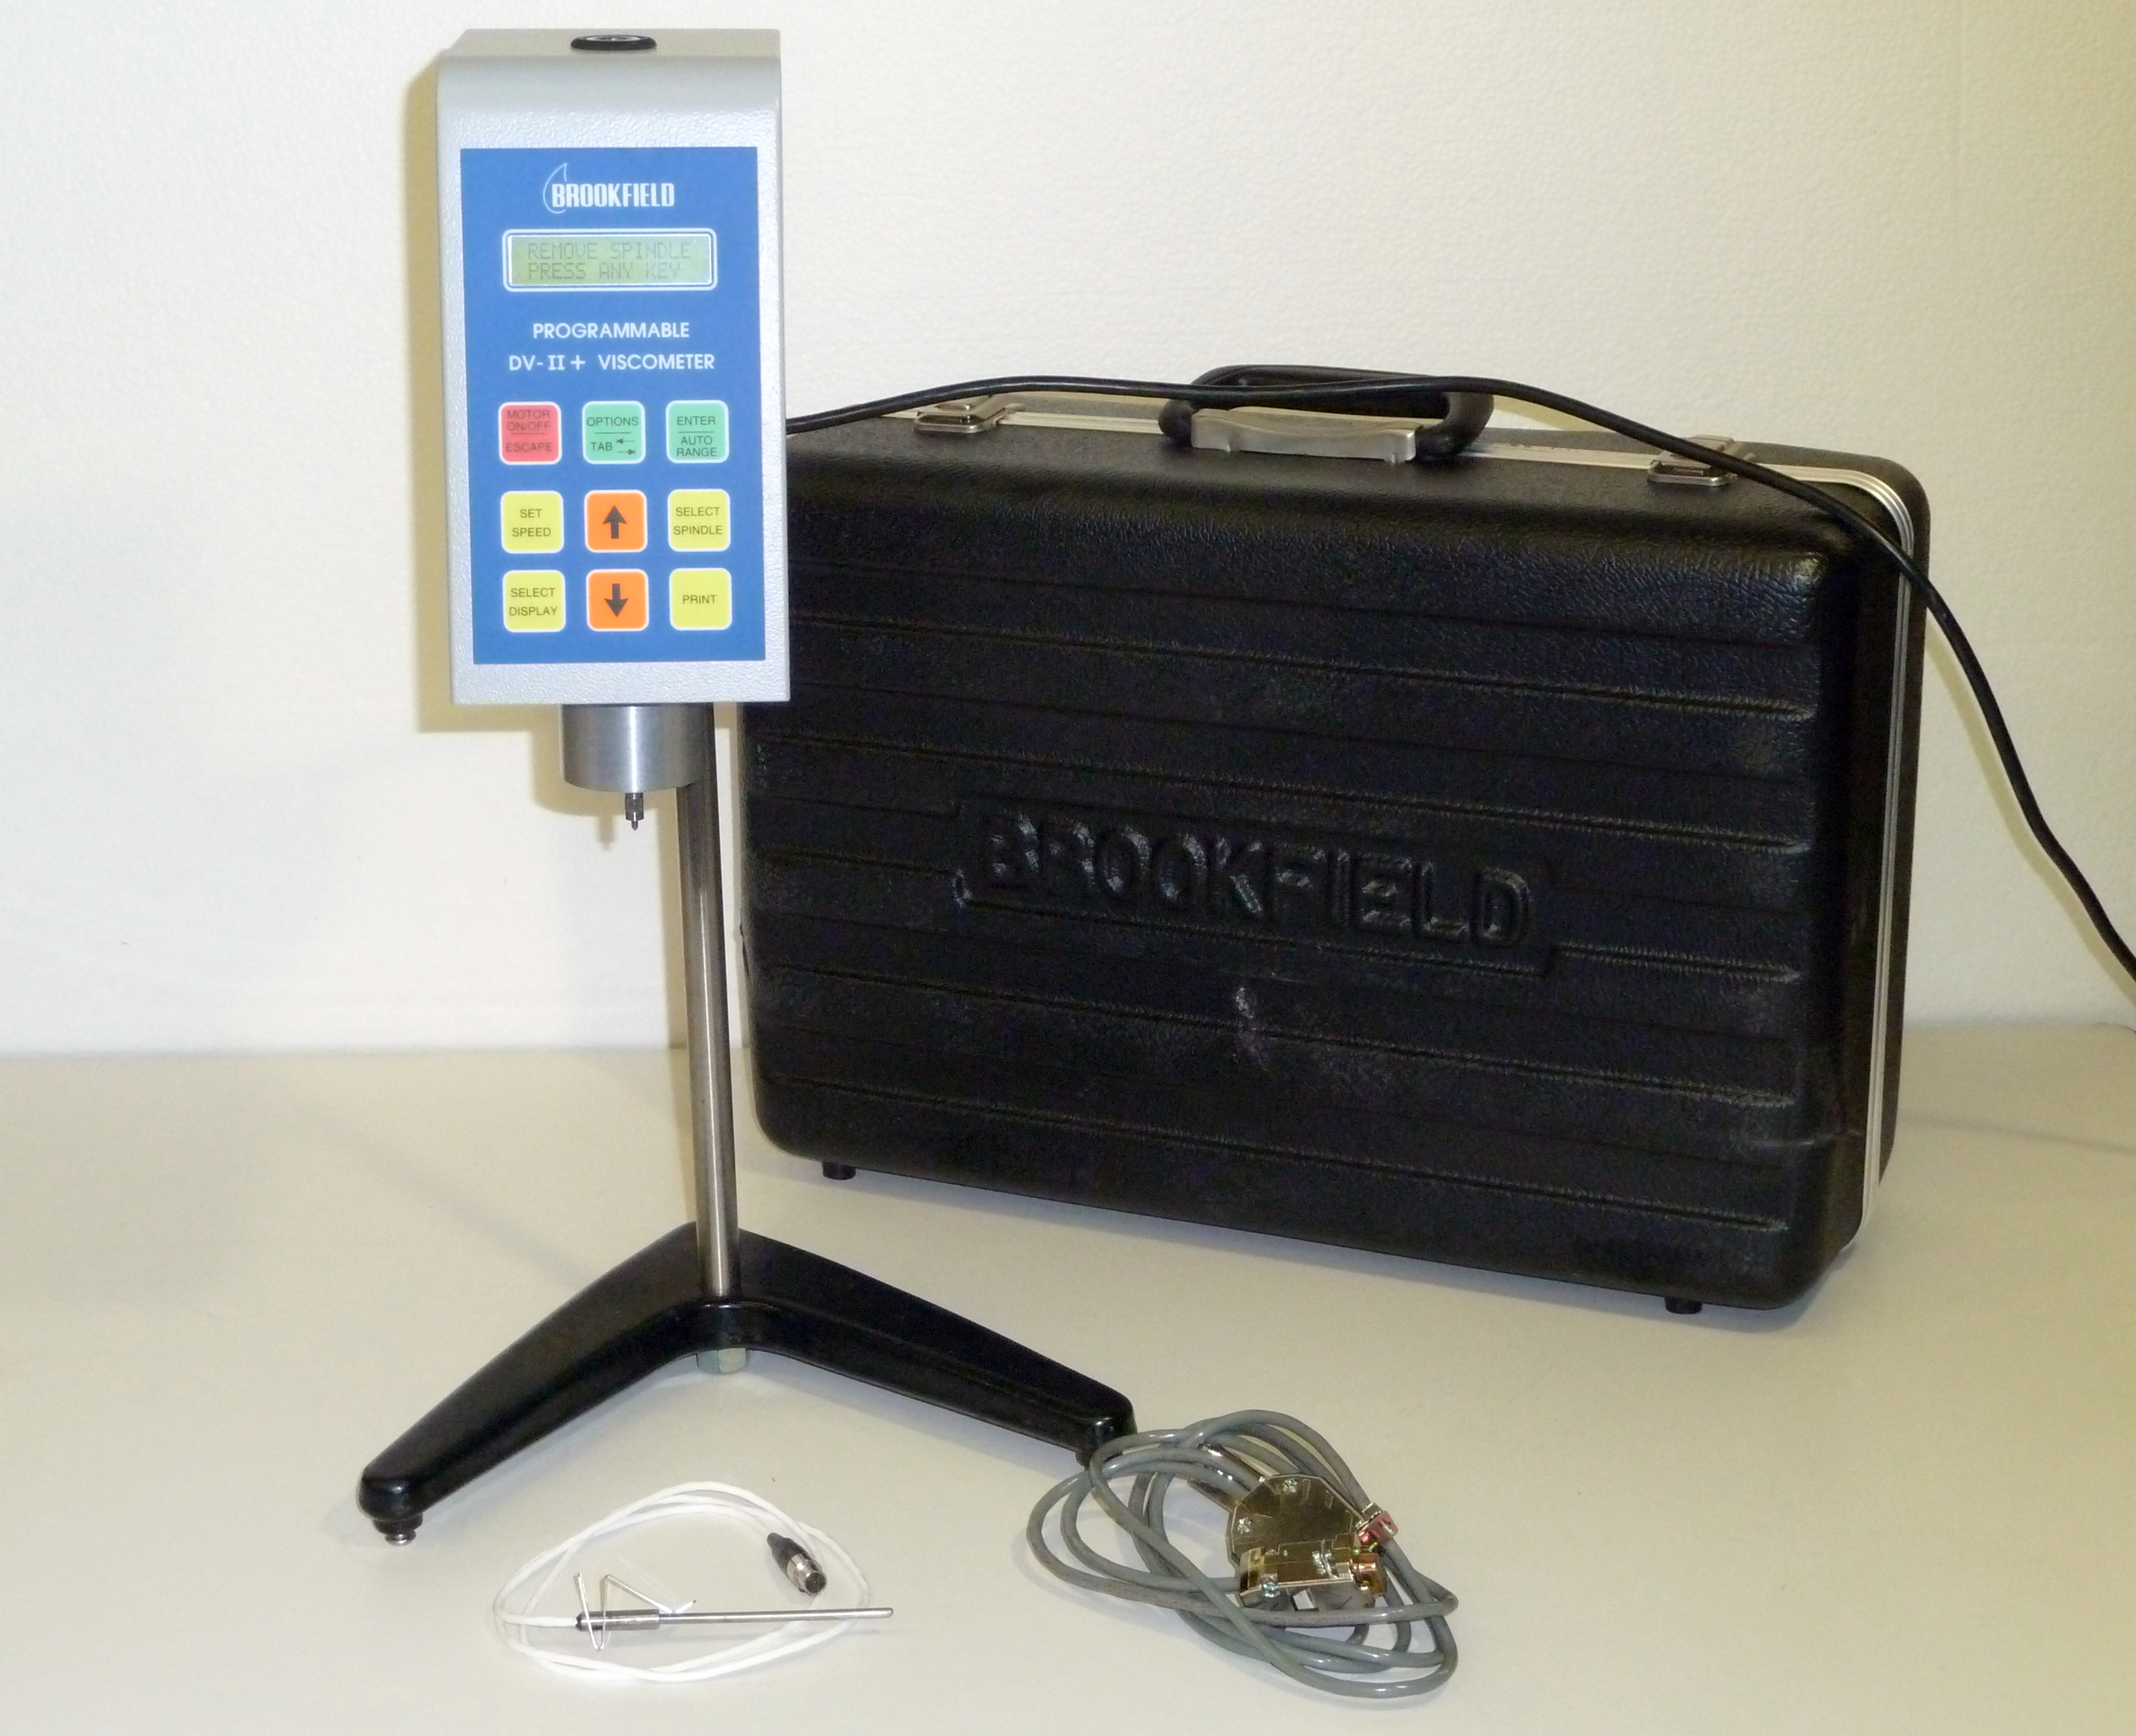 Brookfield DV-11 Plus Digital Viscometer Model HBDV11